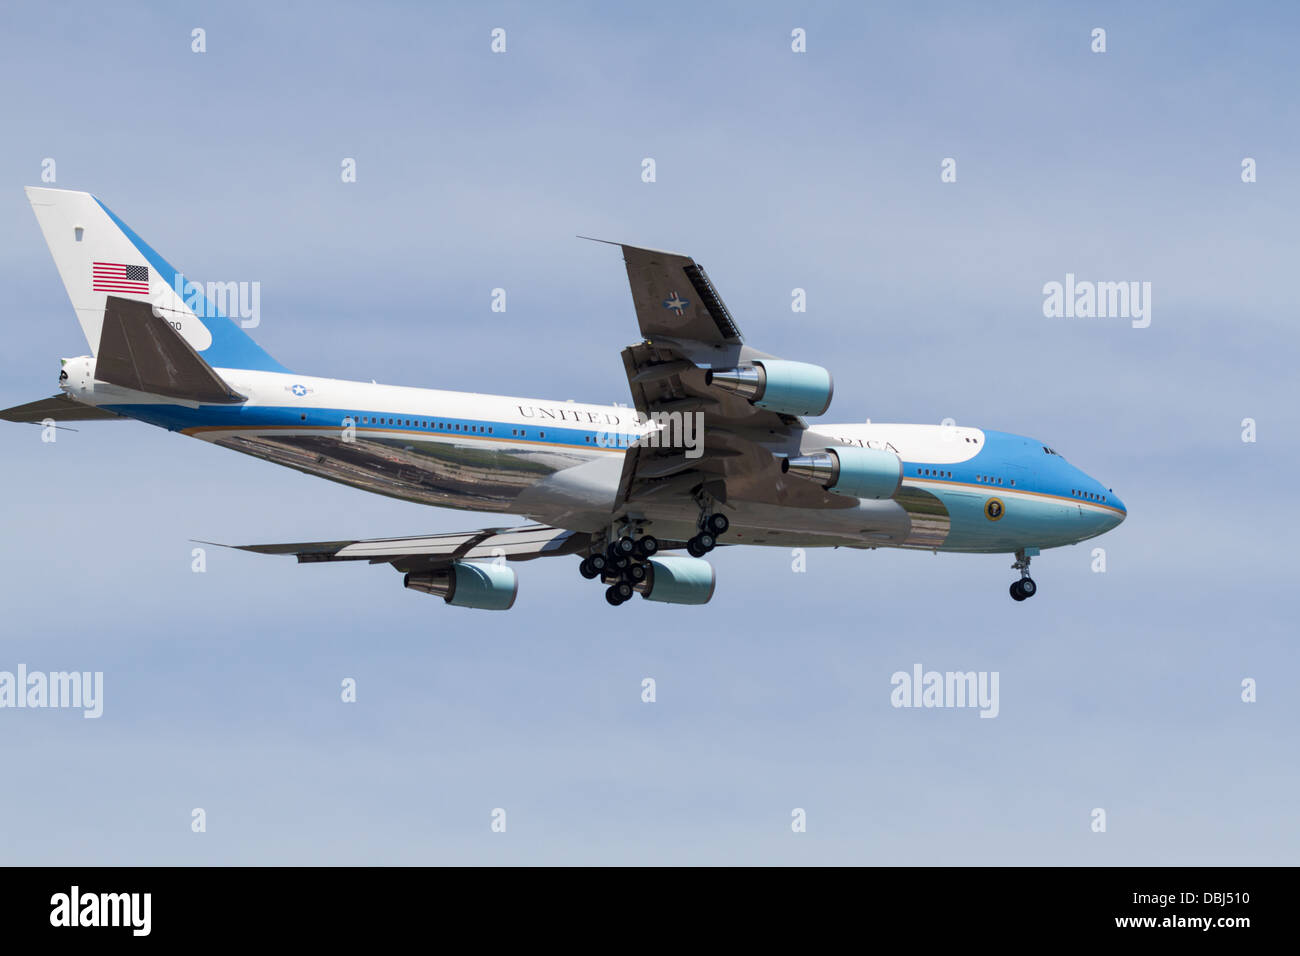 Air Force One on approach to land at Chattanooga, Tennessee. - Stock Image